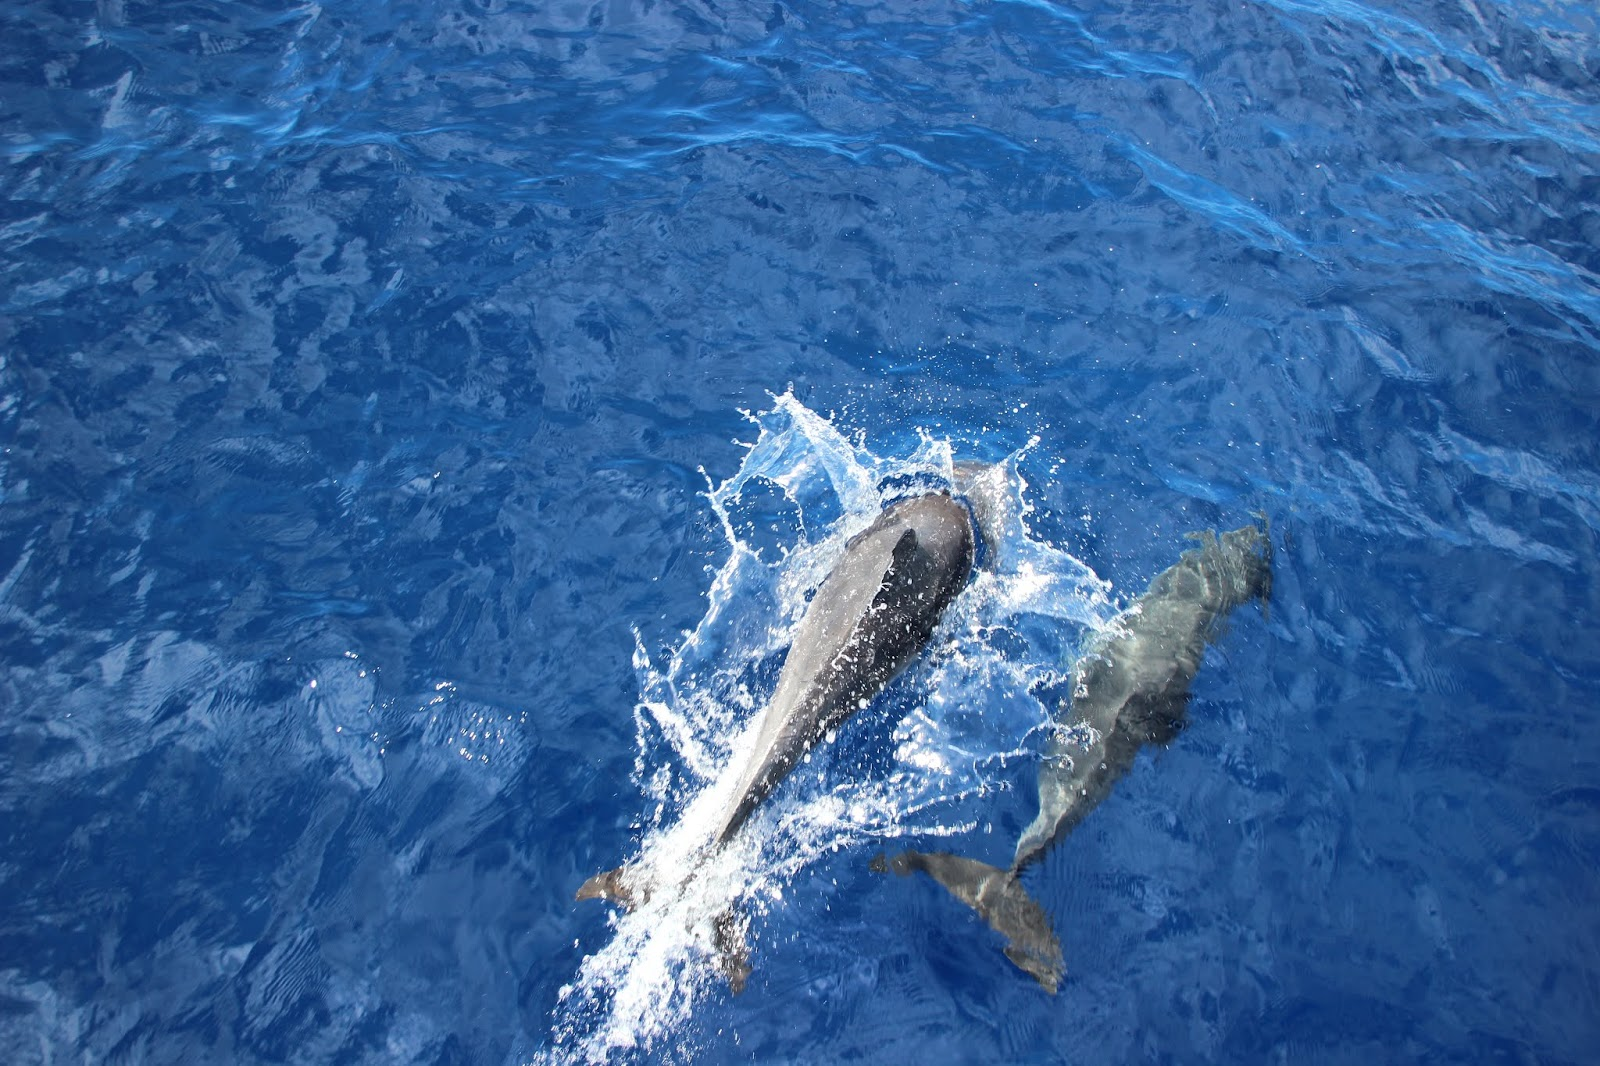 two dolphins just entering the water after a jump